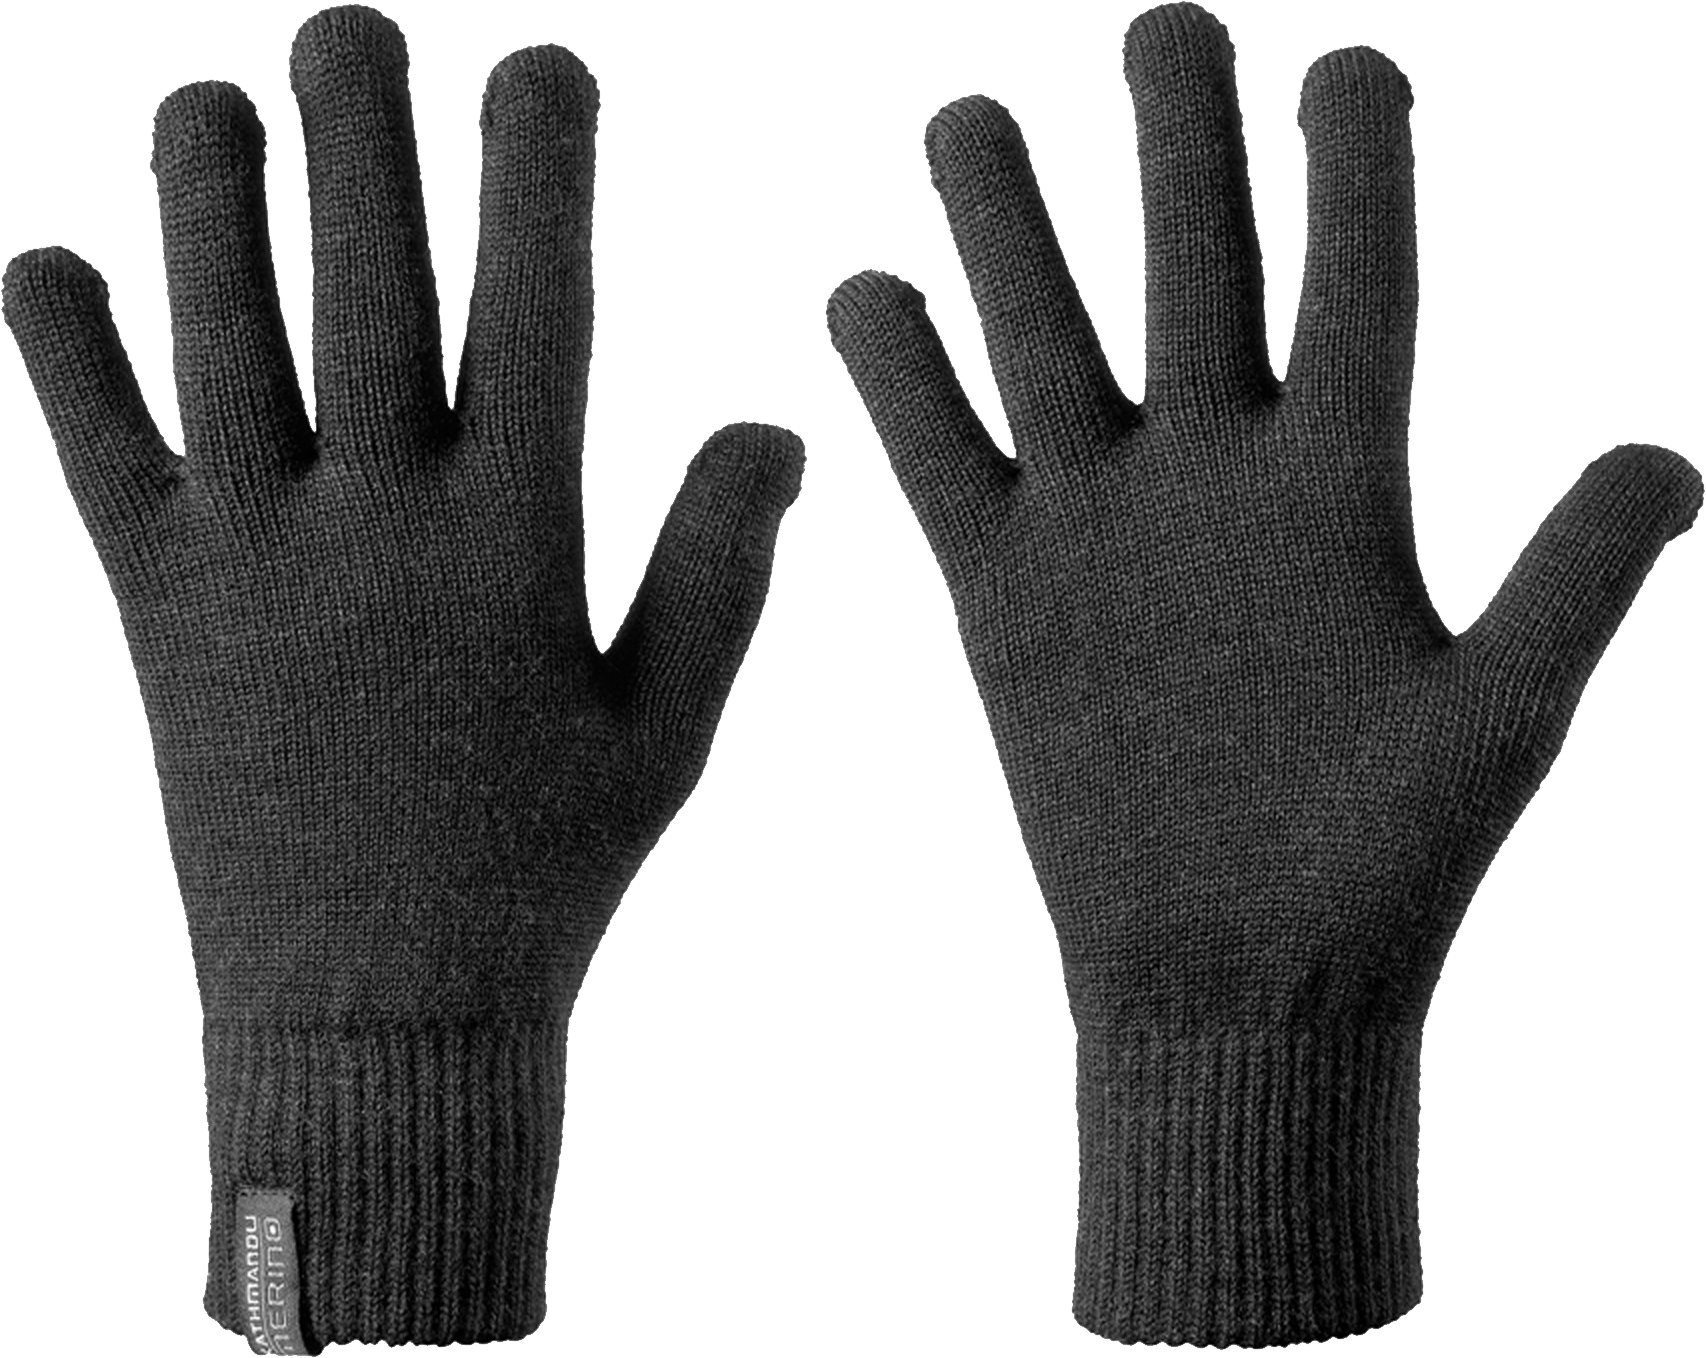 svg black and white stock Mitten clipart transparent background. Simple gloves png image.